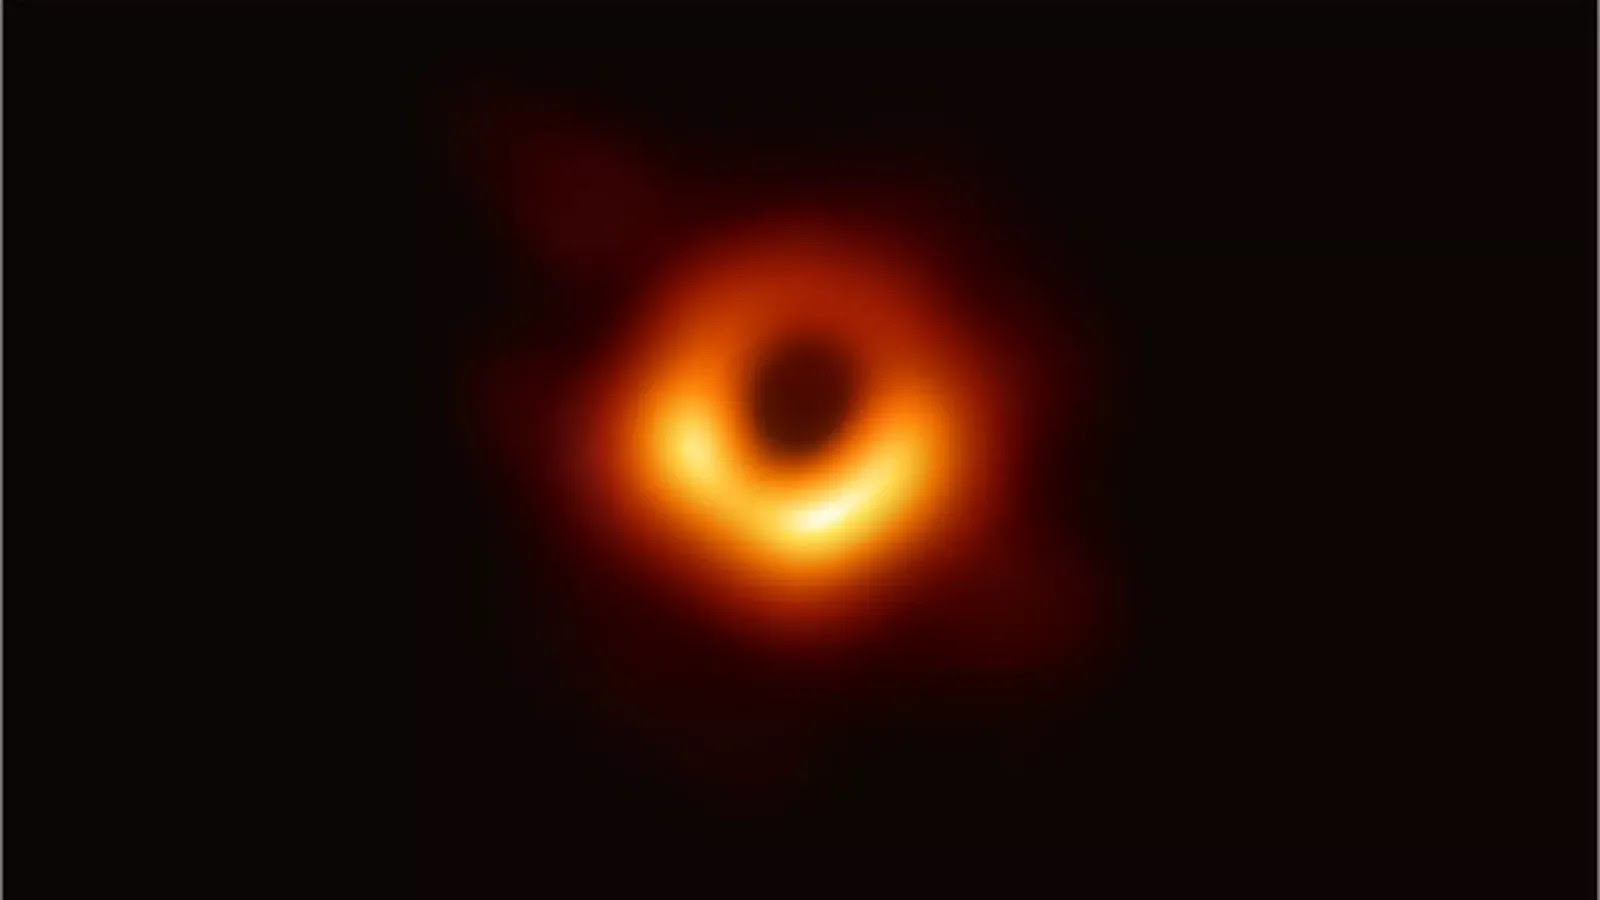 a moon, worn as if it had been a shell: Black Holes and ...